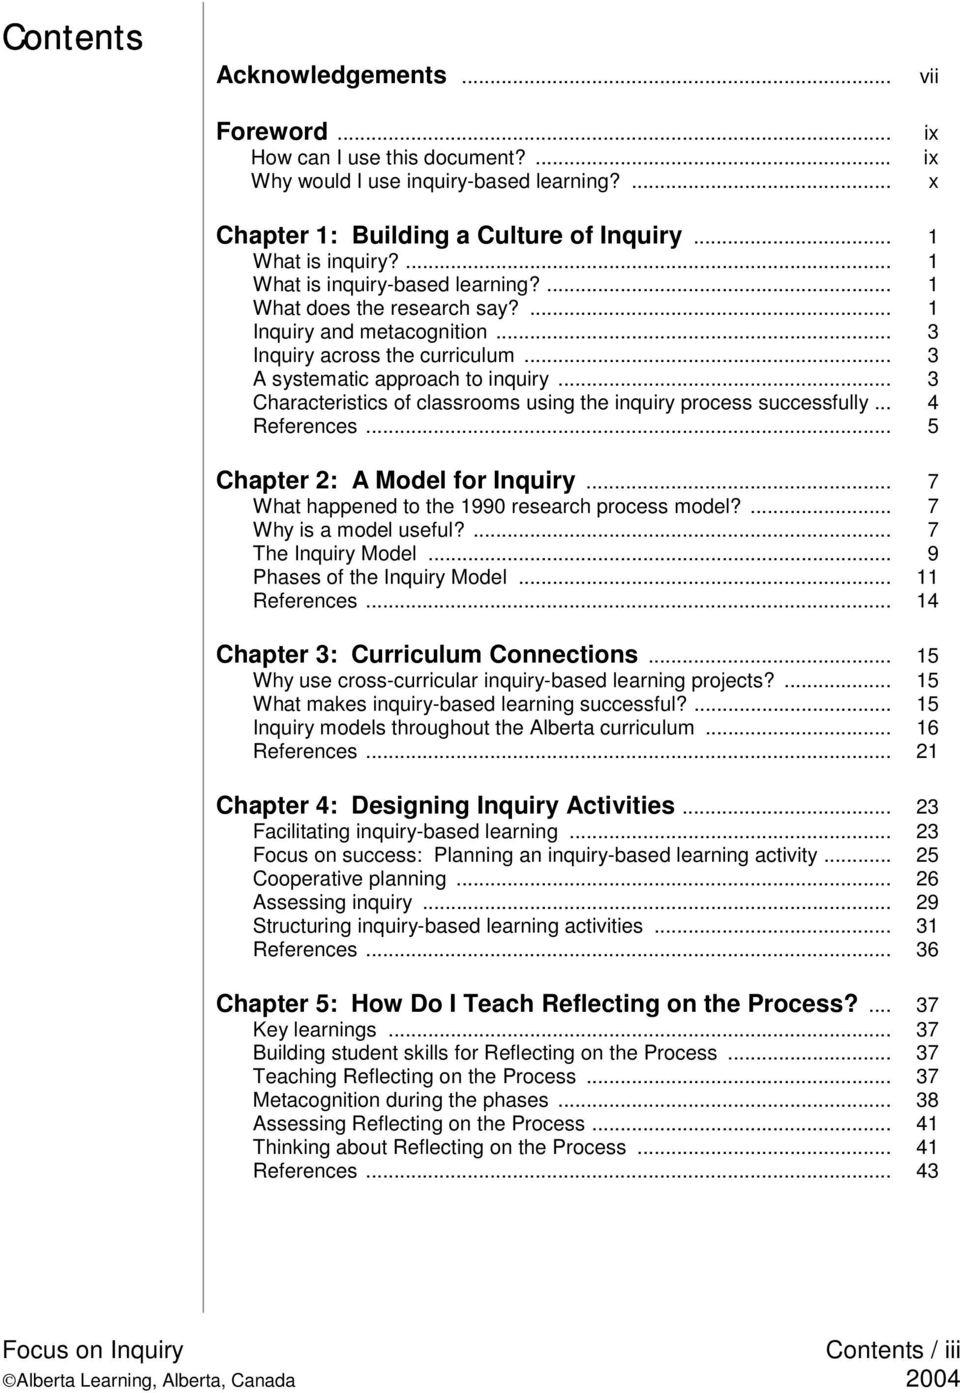 .. 3 Characteristics of classrooms using the inquiry process successfully... 4 References... 5 Chapter 2: A Model for Inquiry... 7 What happened to the 1990 research process model?